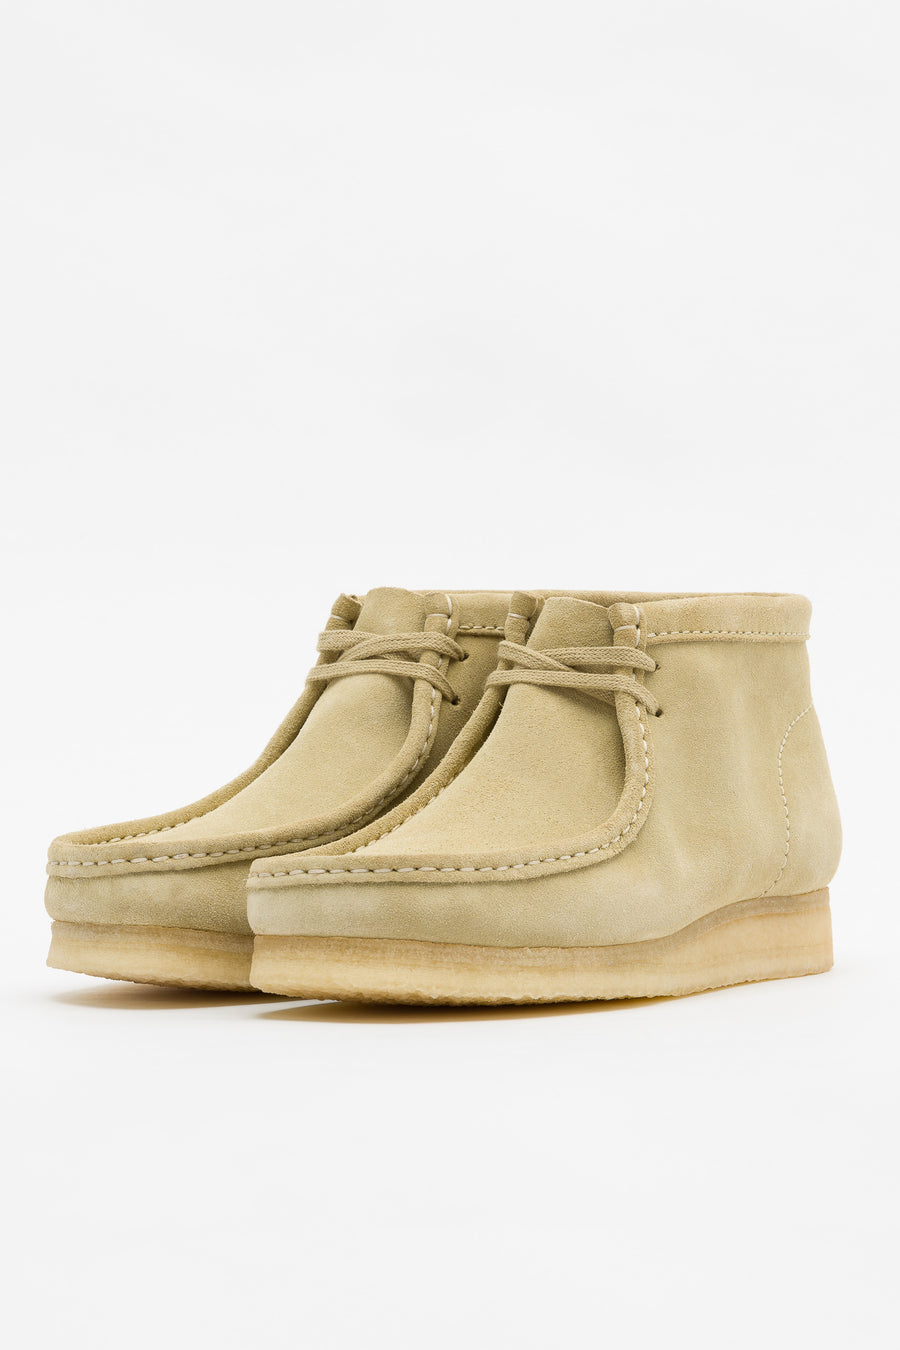 Clarks Wallabee Boot in Maple Suede - Notre